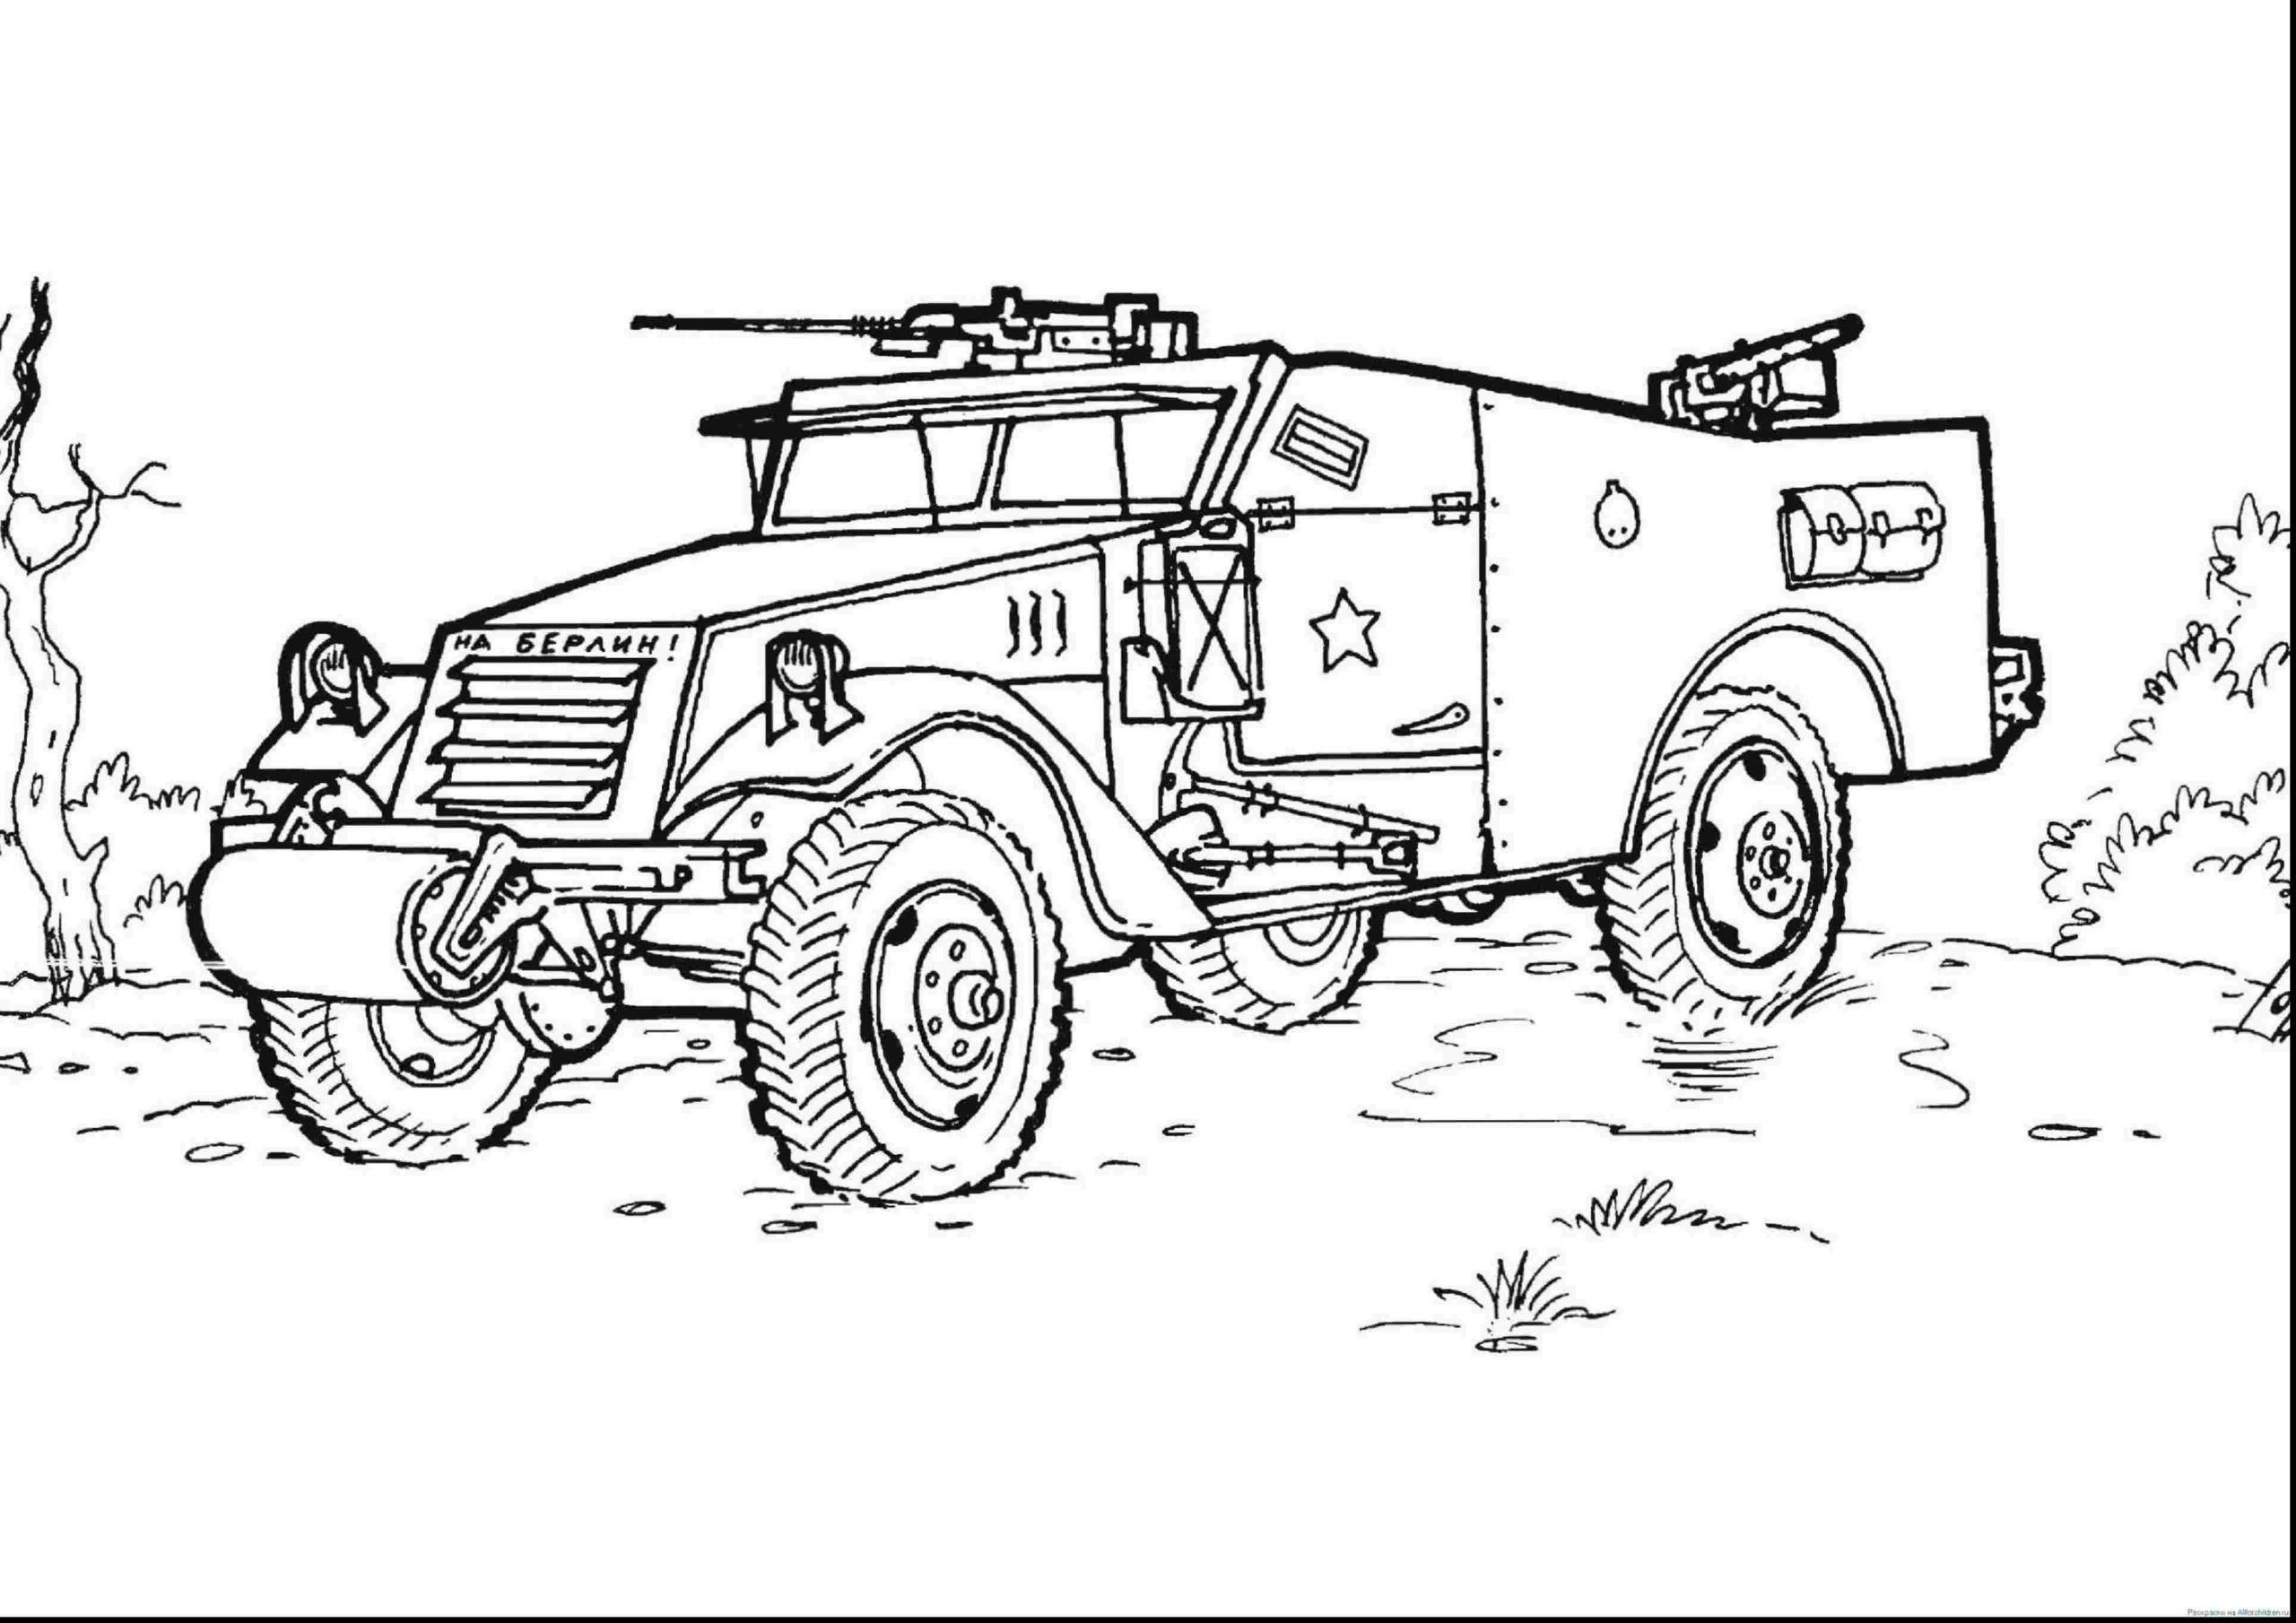 Awesome Coloring Pages Army That You Must Know You Re In